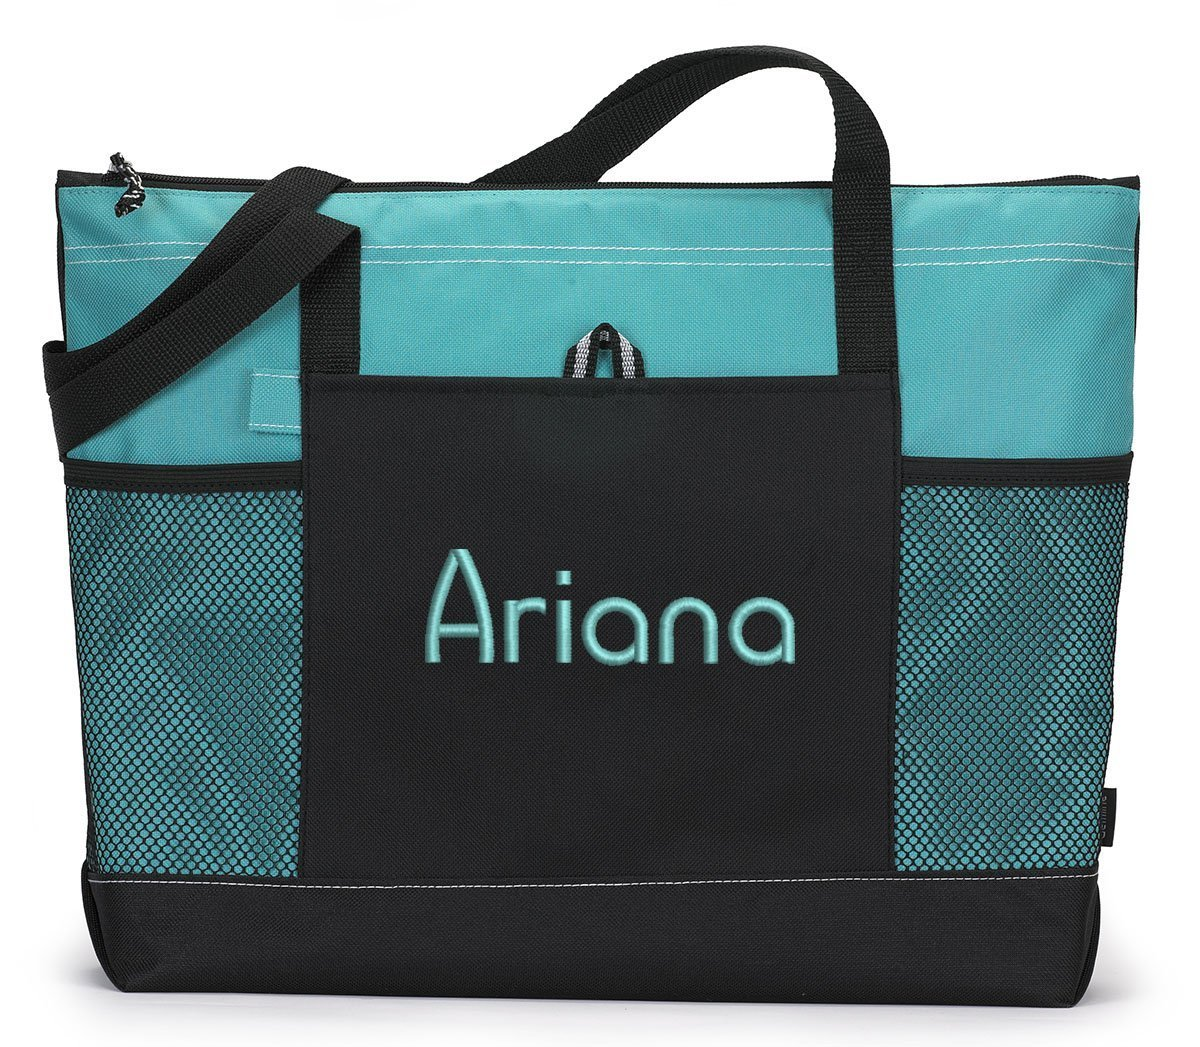 Name Personalized Embroidered Tote with Monogram